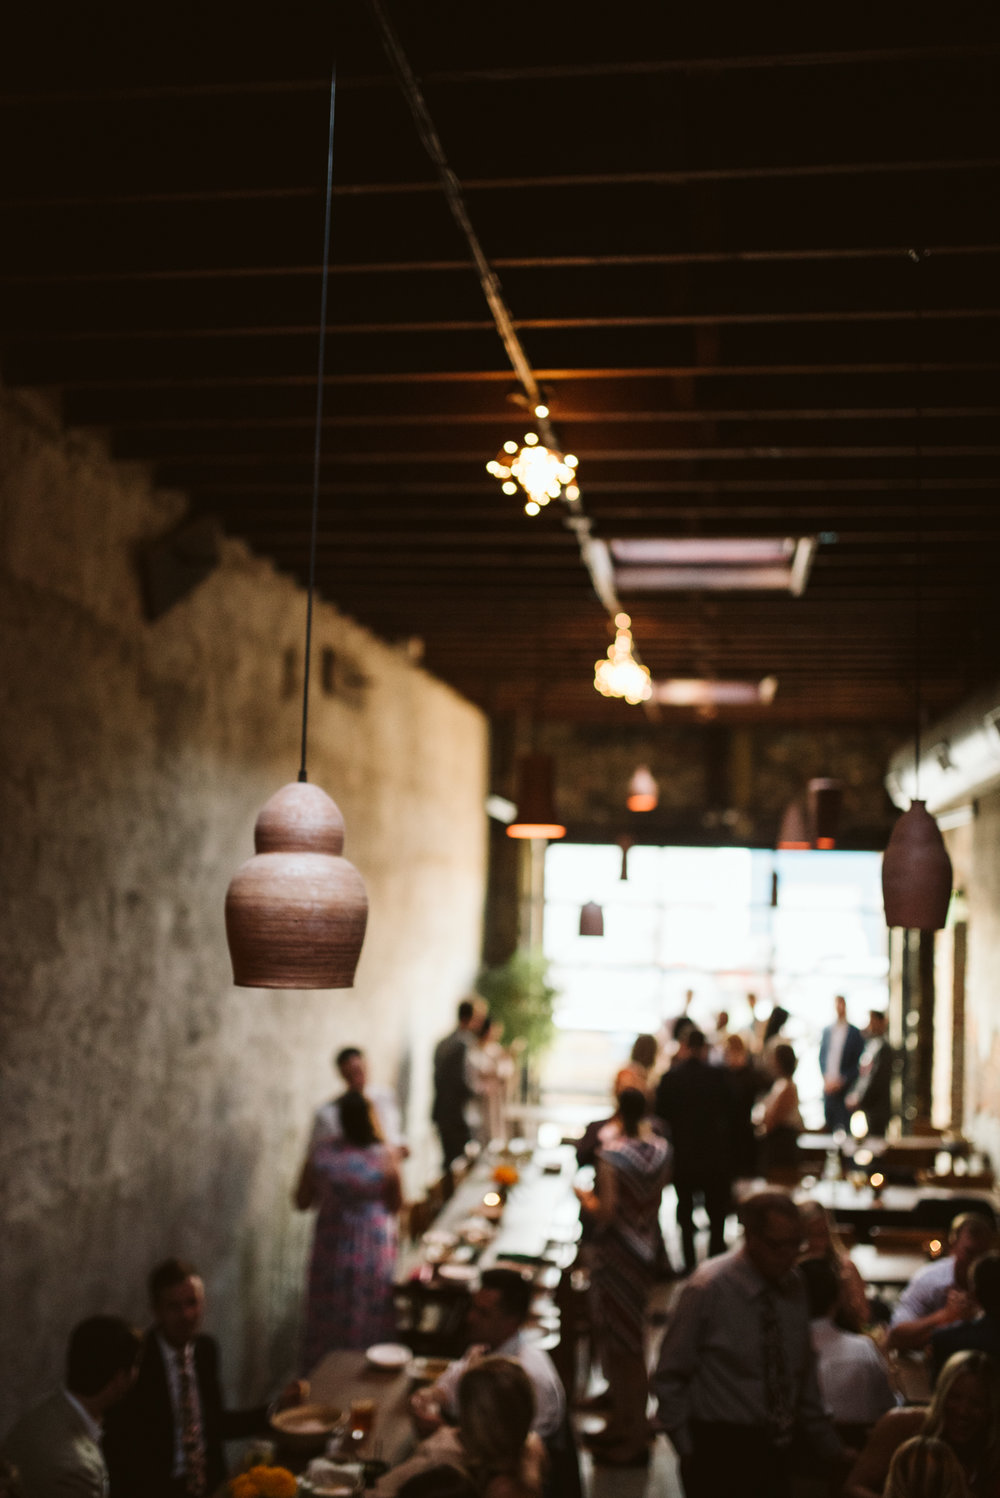 Outdoor Wedding, Casual, Simple, Baltimore, Maryland Wedding Photographer, Laid Back, September, Wedding Reception, Clavel, Wedding Guests